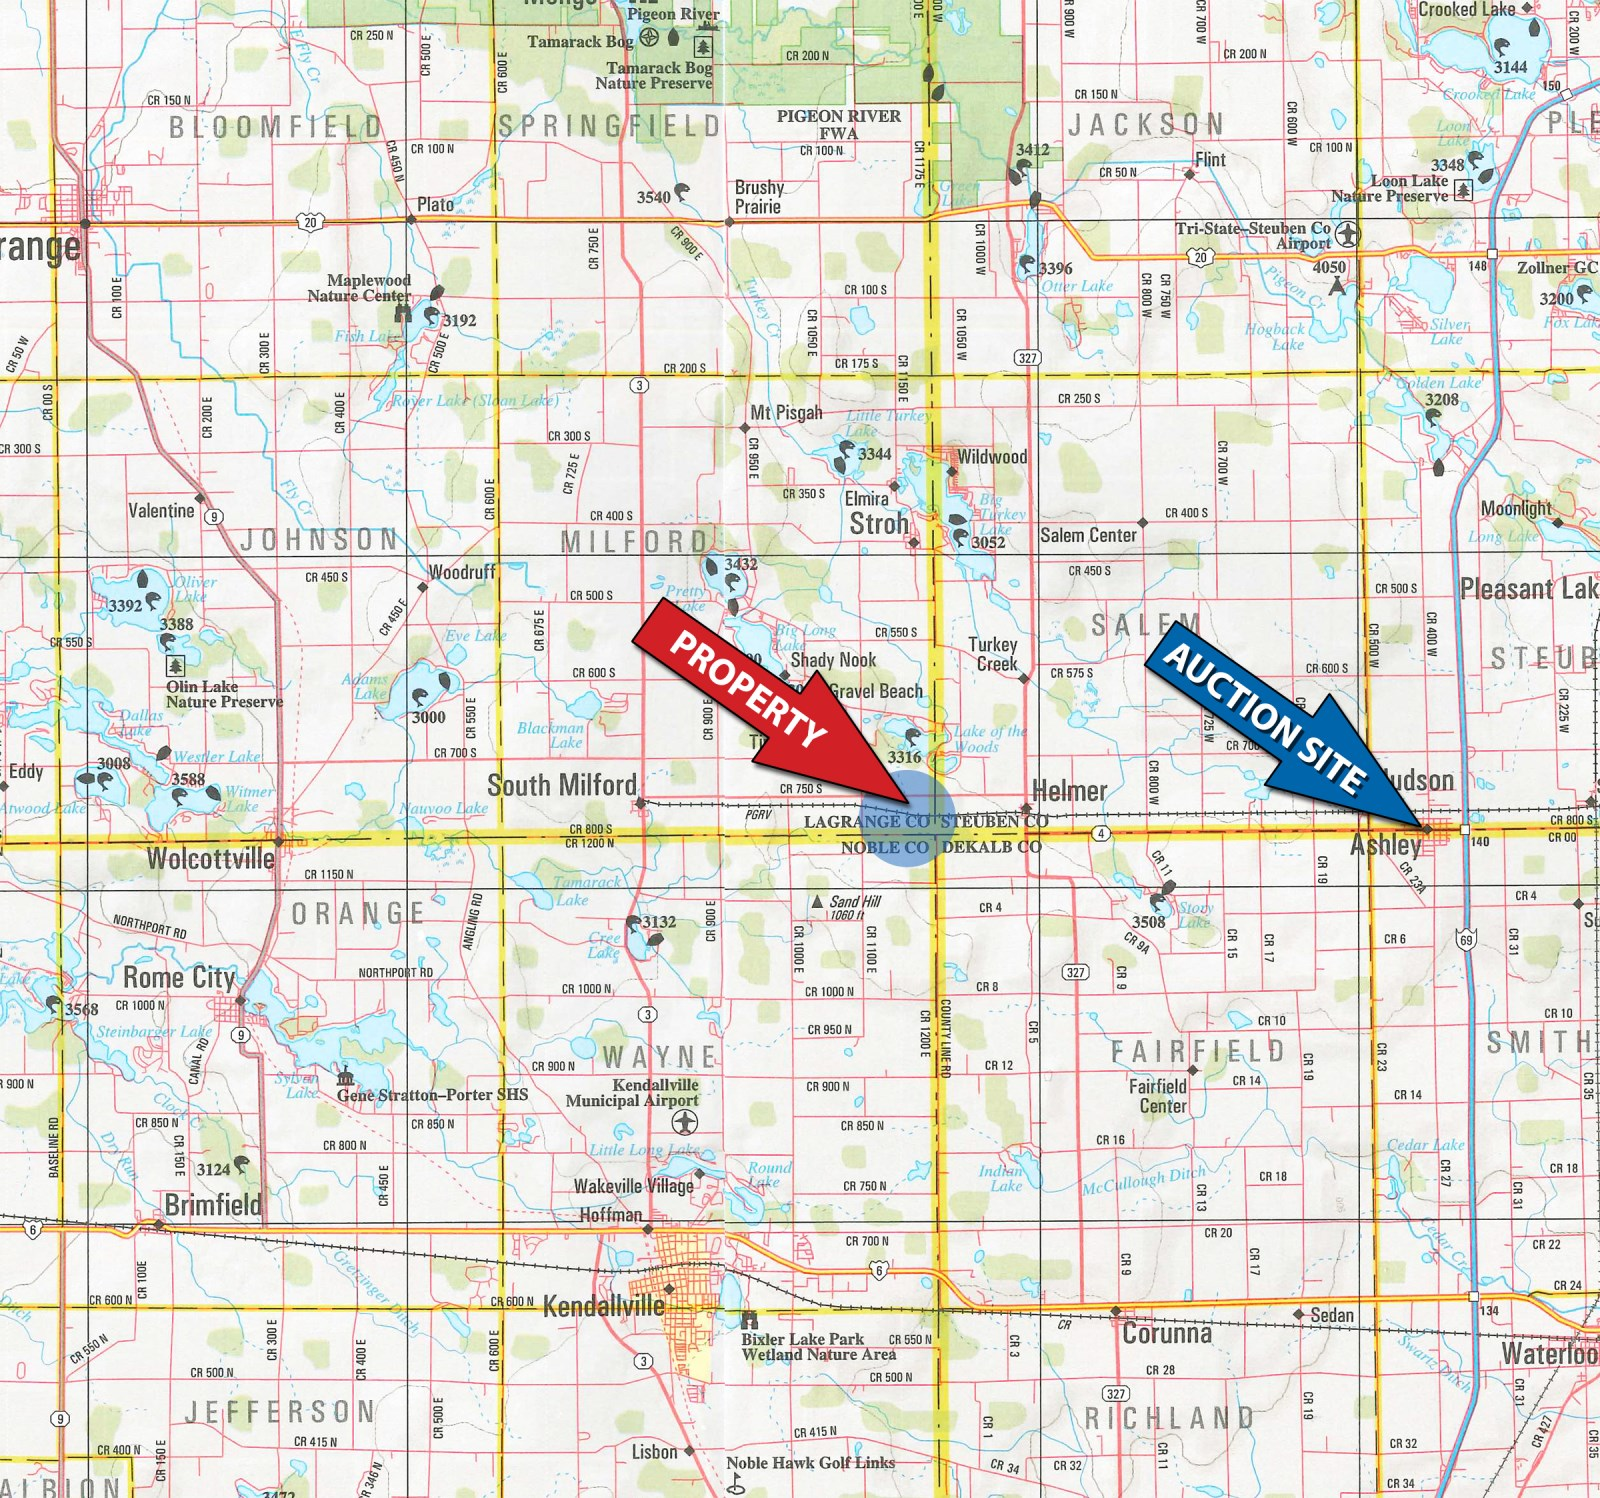 Aerial Photography Map Of Highlands Ranch Co Colorado: 81.54+/- In 3 Tracts : Ranch Auction